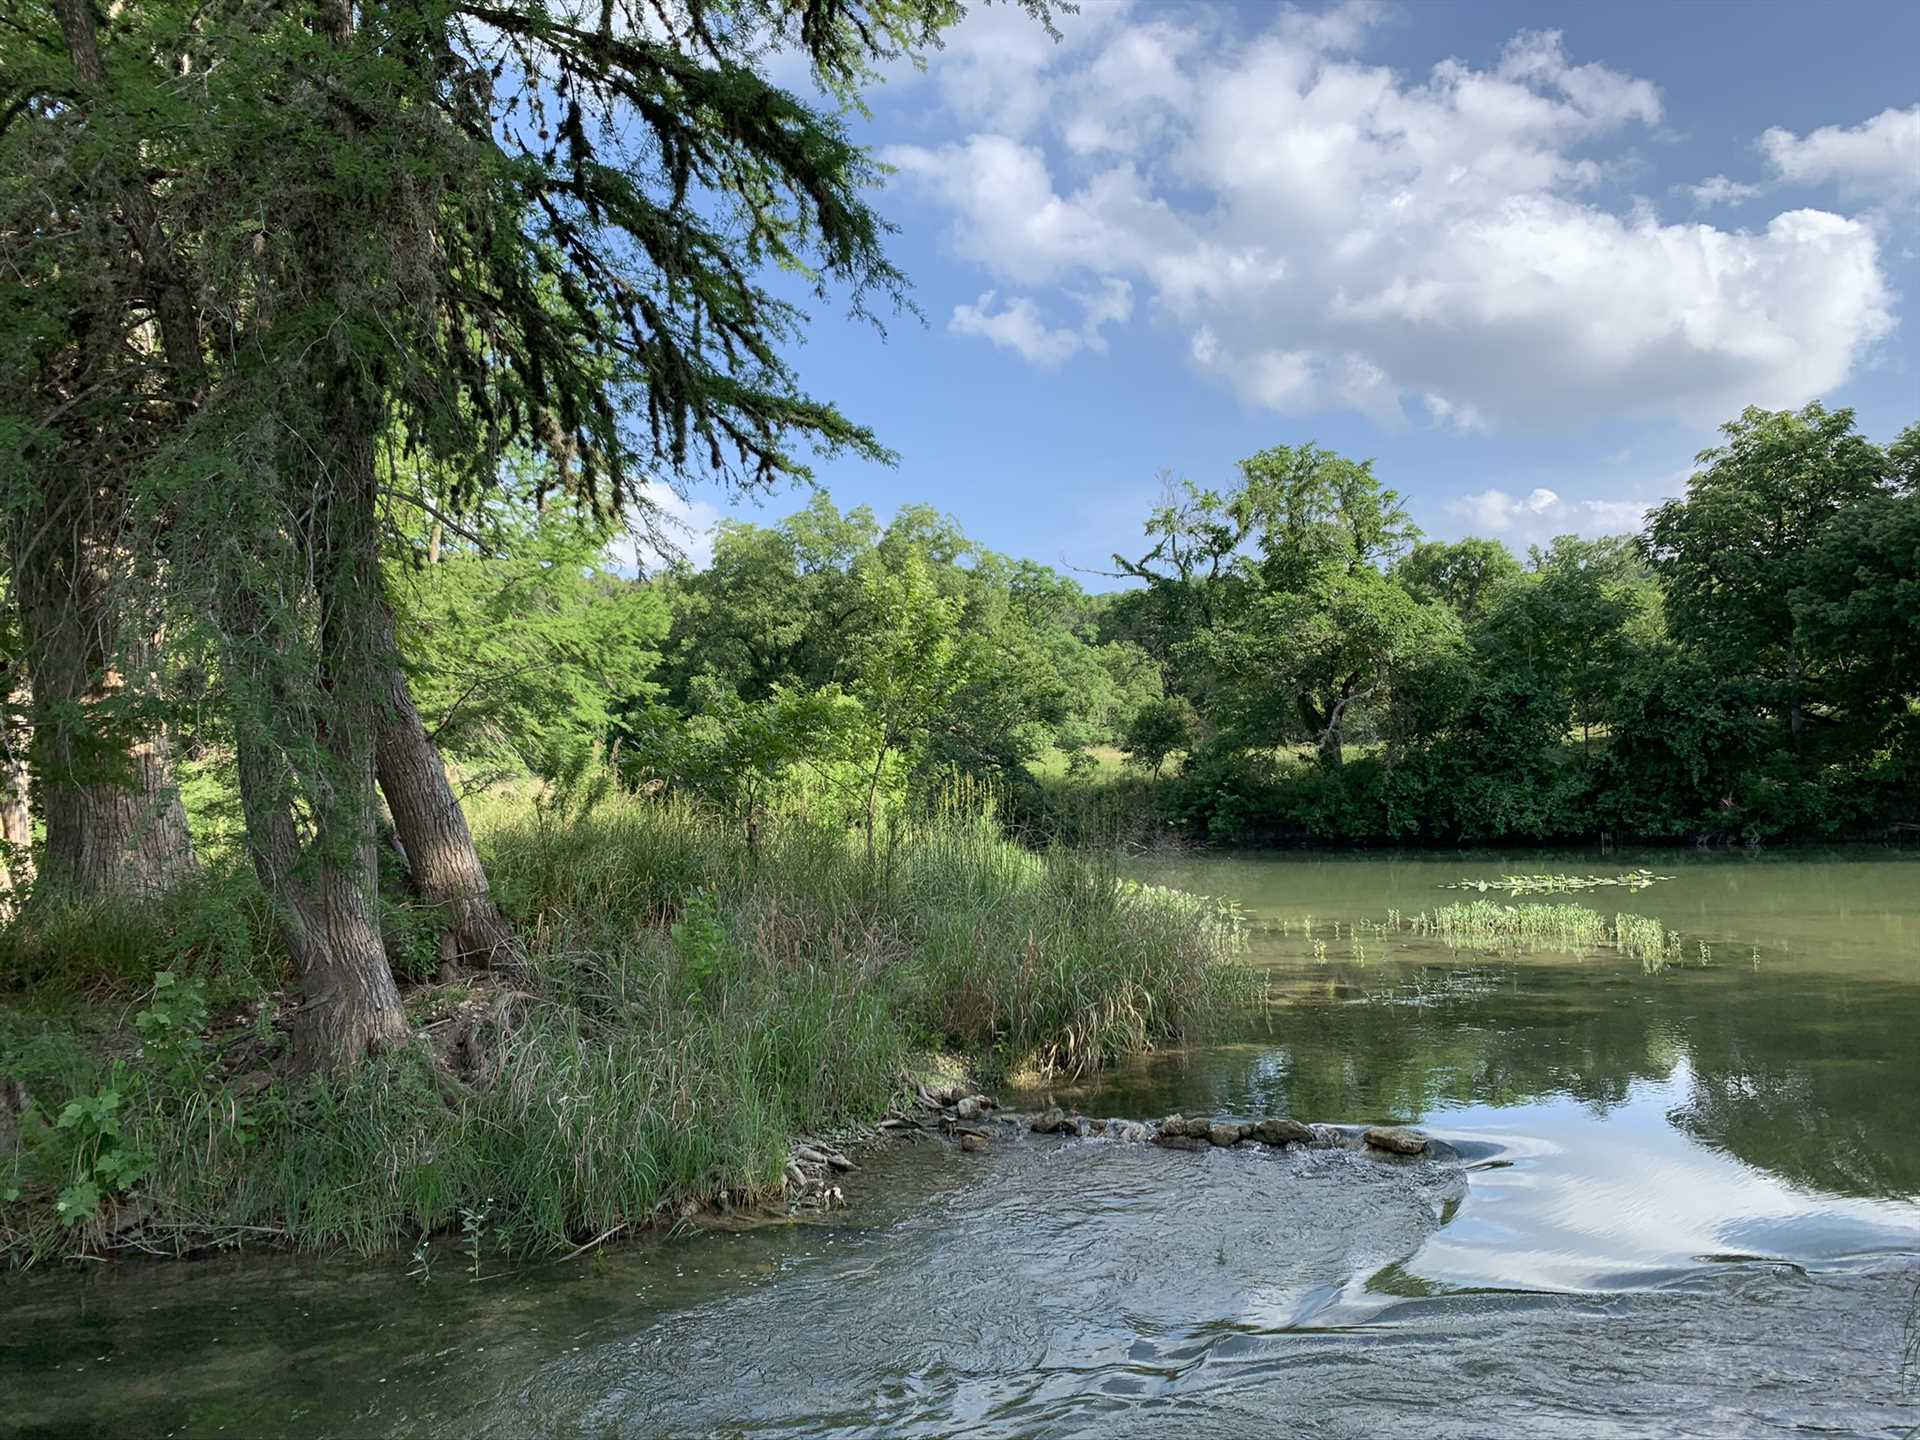 Grab a tube, a rod and reel, or just take a plunge into the cool and refreshing waters of the Guadalupe!